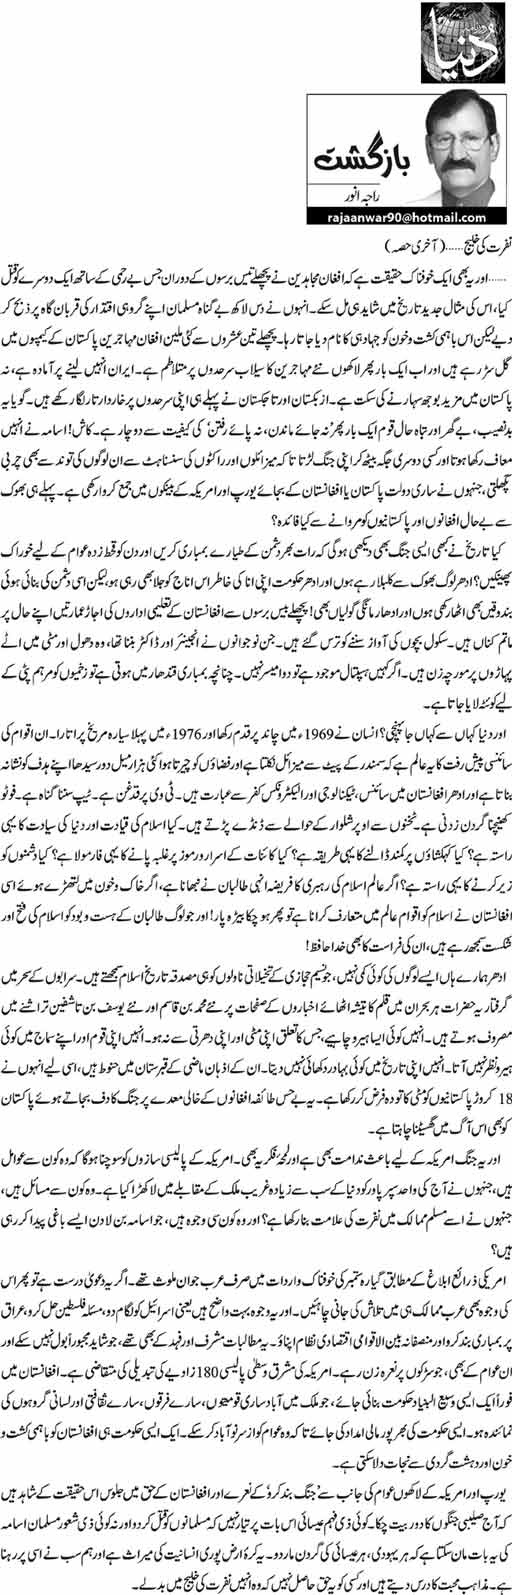 Nafrat Ki Khaleej ... (Last Part) - Raja Anwar - 12th April 2014